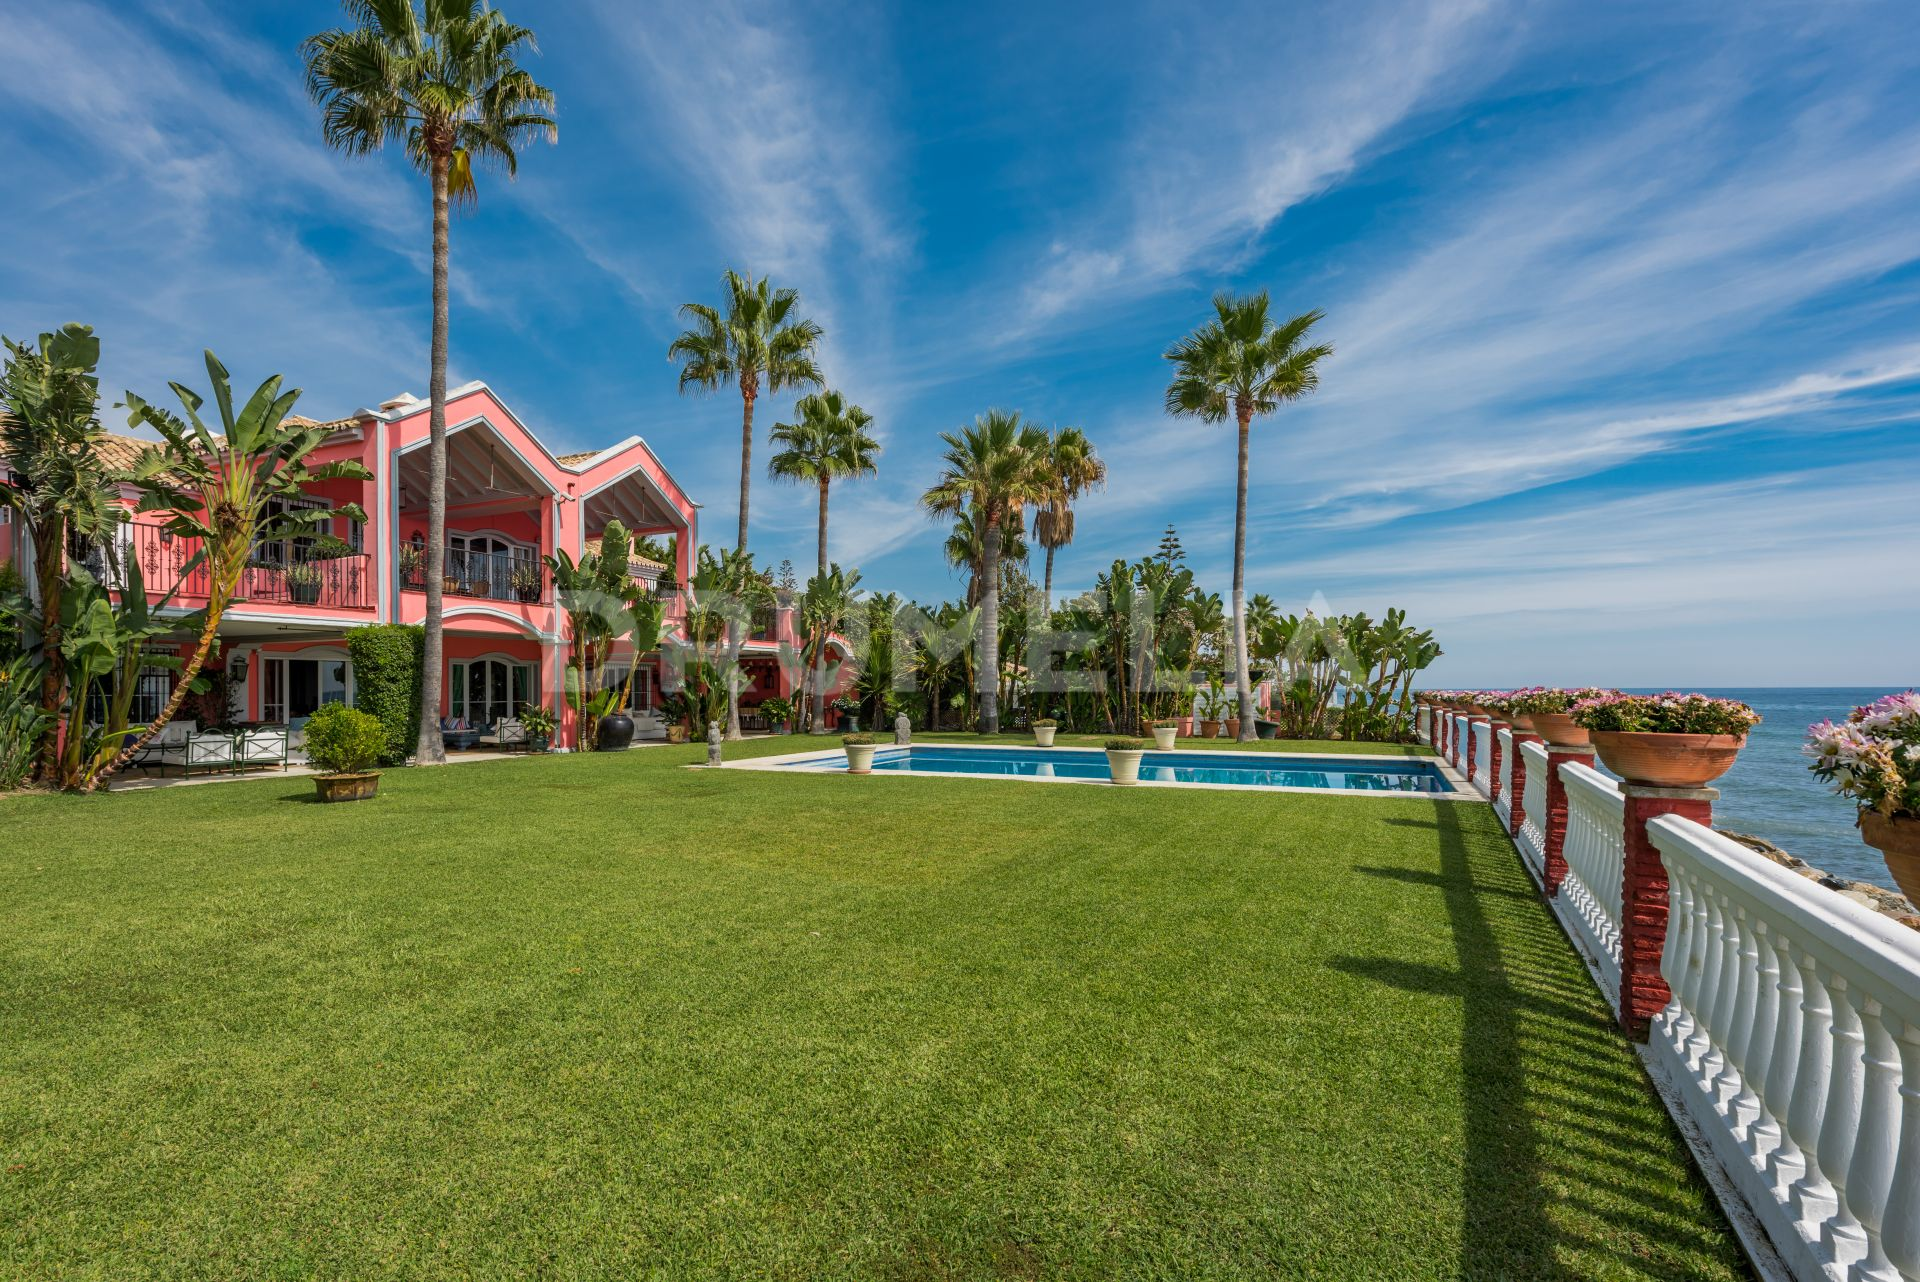 Estepona, Elegant Beachfront Colonial Style High- End Villa in Casasola, Estepona